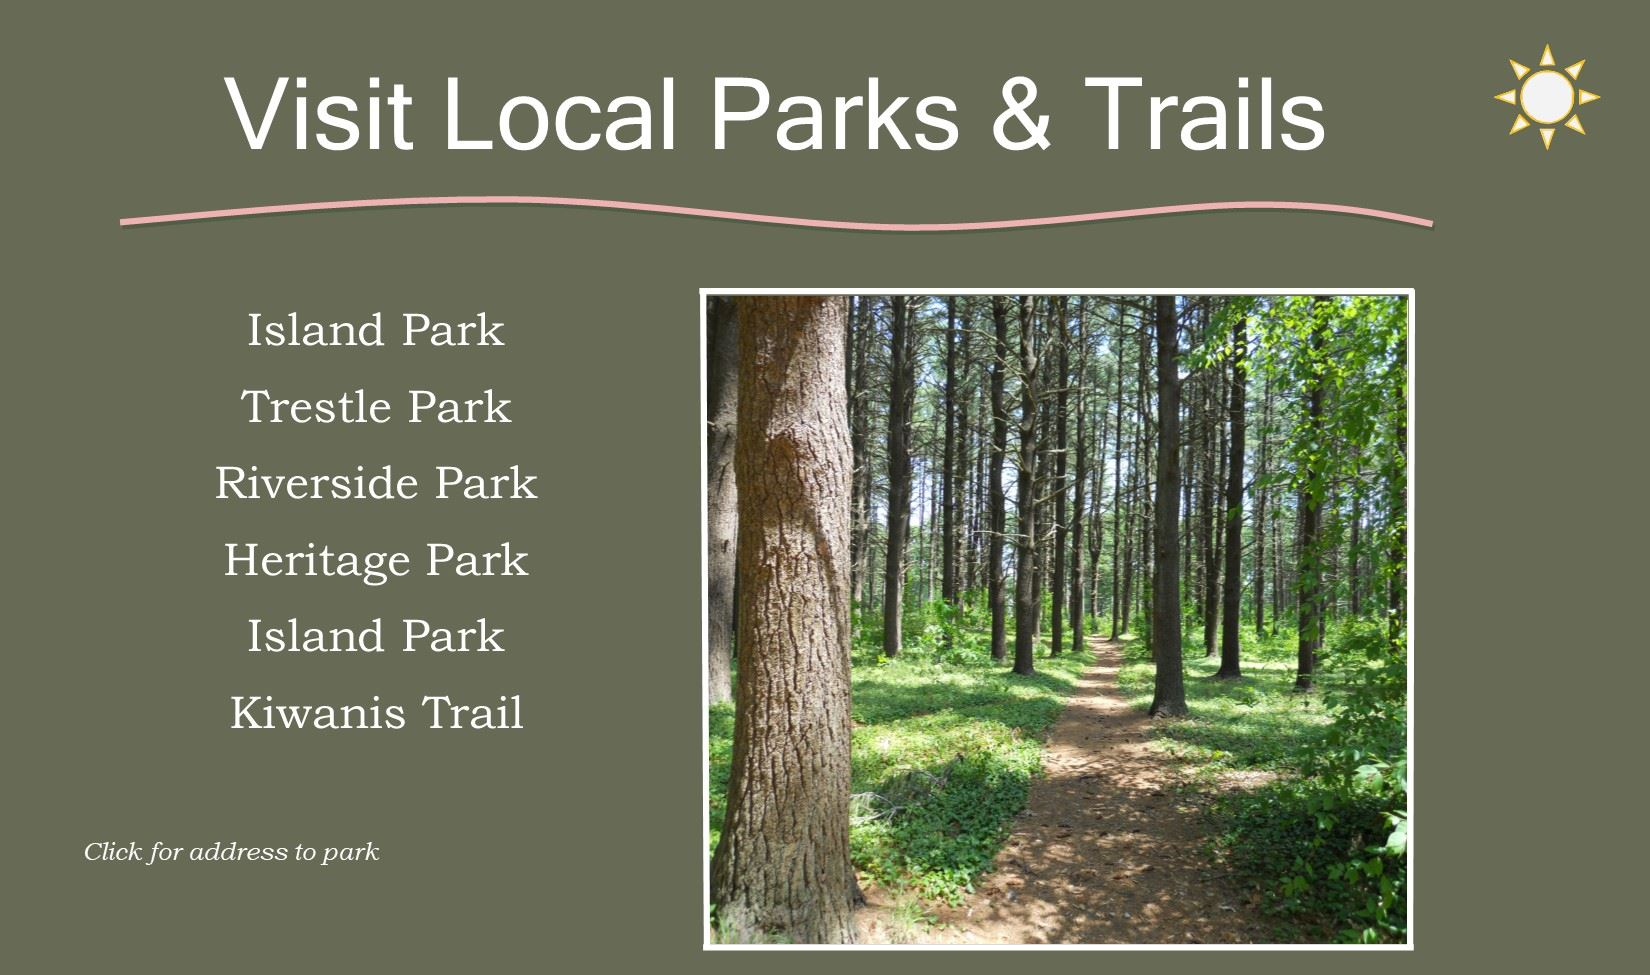 Local parks and trails with a picture of a trail through a canopy of trees